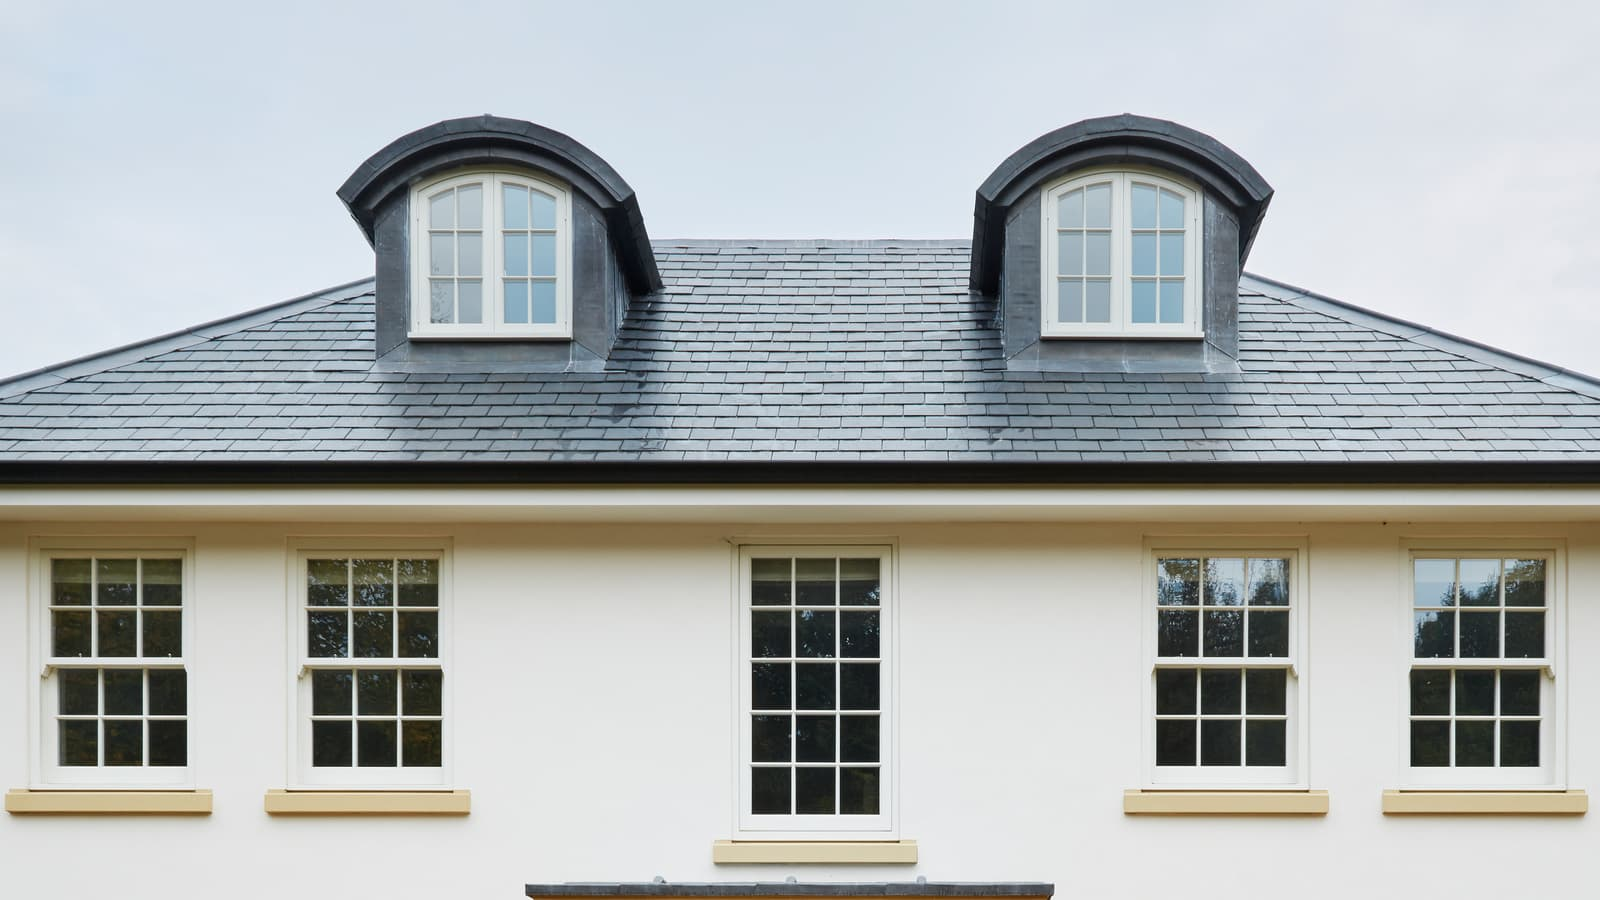 Shaped French dormer windows